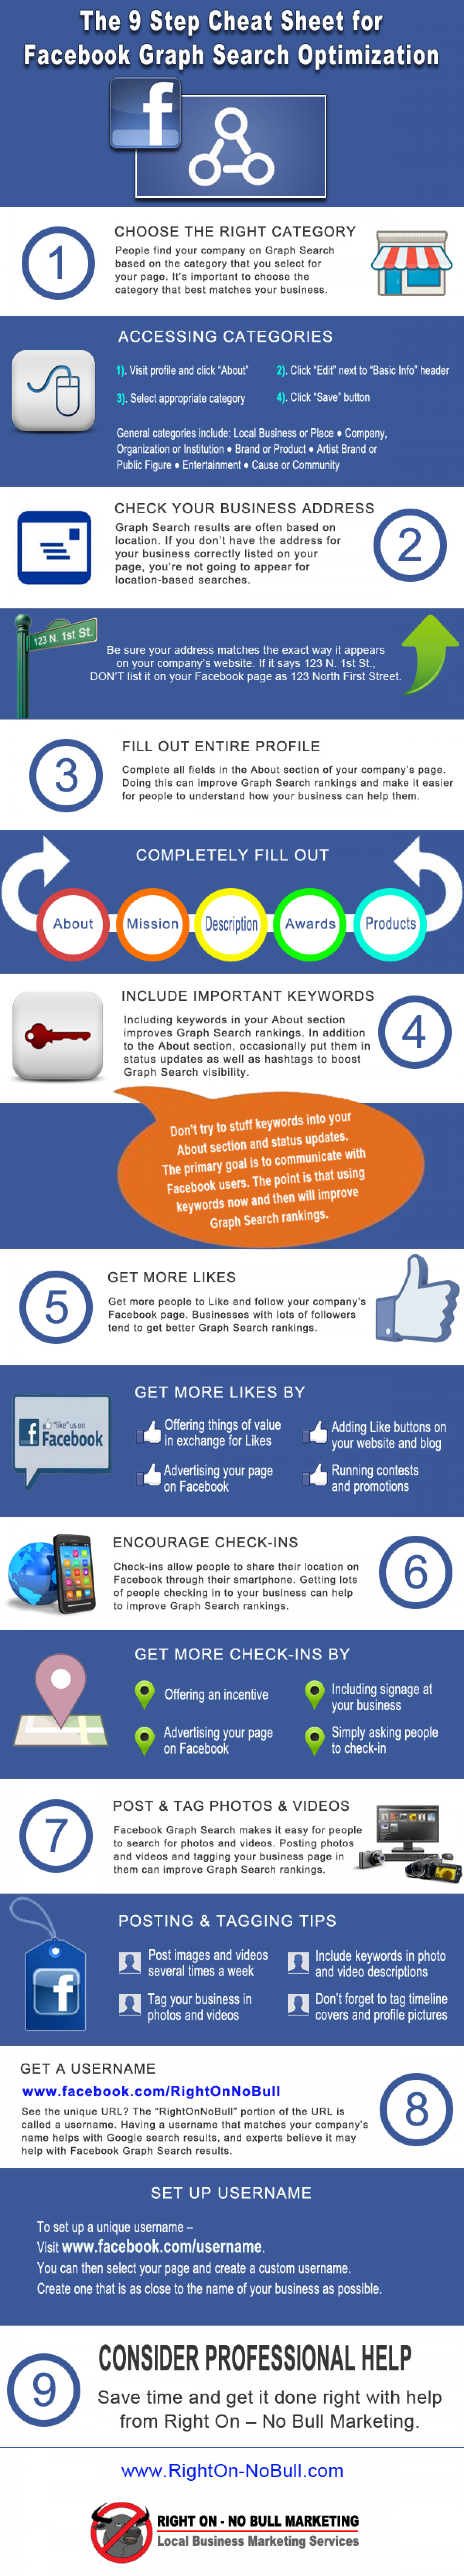 The 9 Step Cheat Sheet for Facebook Graph Search Optimization Infographic